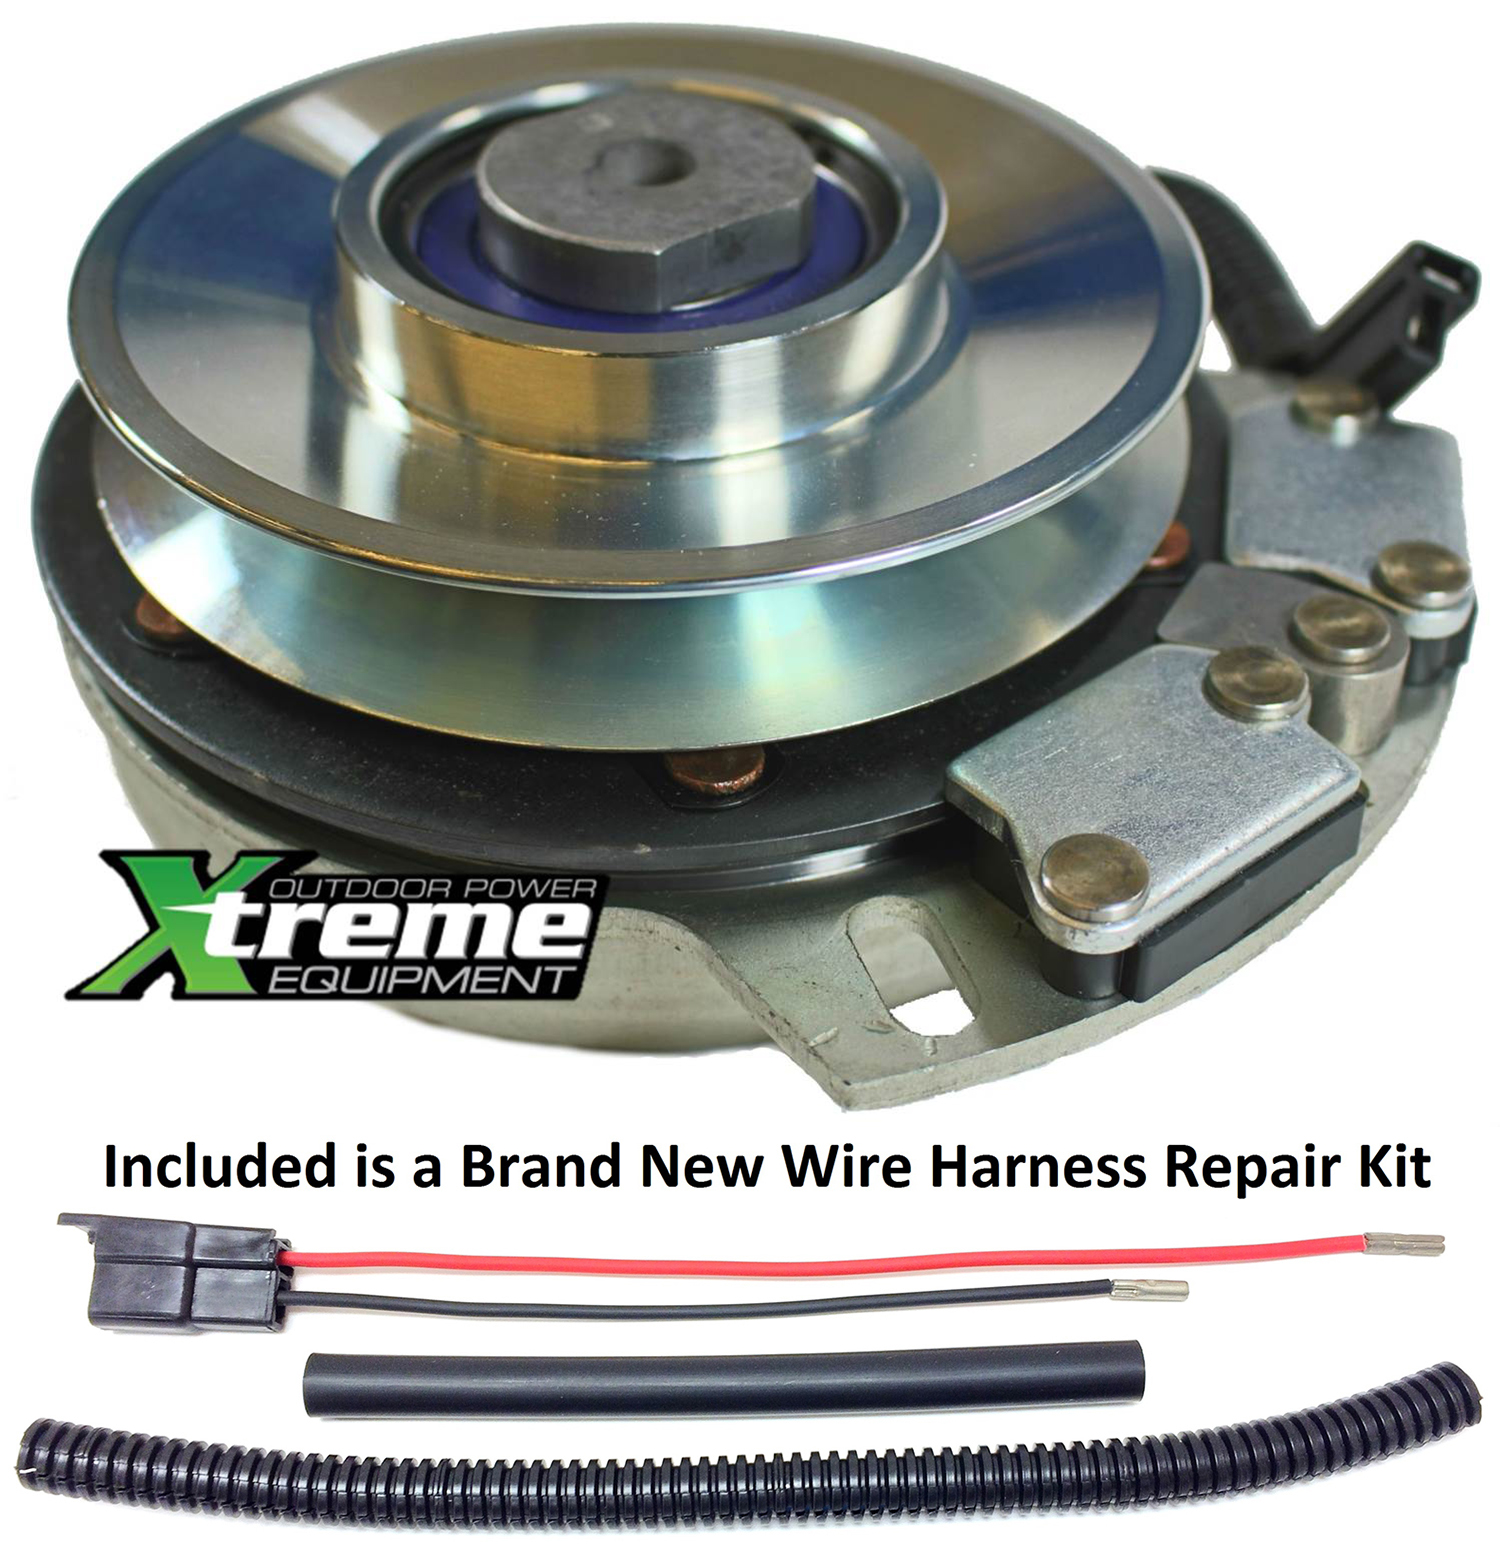 Bundle - 2 items: PTO Electric Blade Clutch, Wire Harness Repair Kit.  Replaces 120786 Lawn Mower PTO Blade Clutch - w/ Wire Harness Repair Kit !